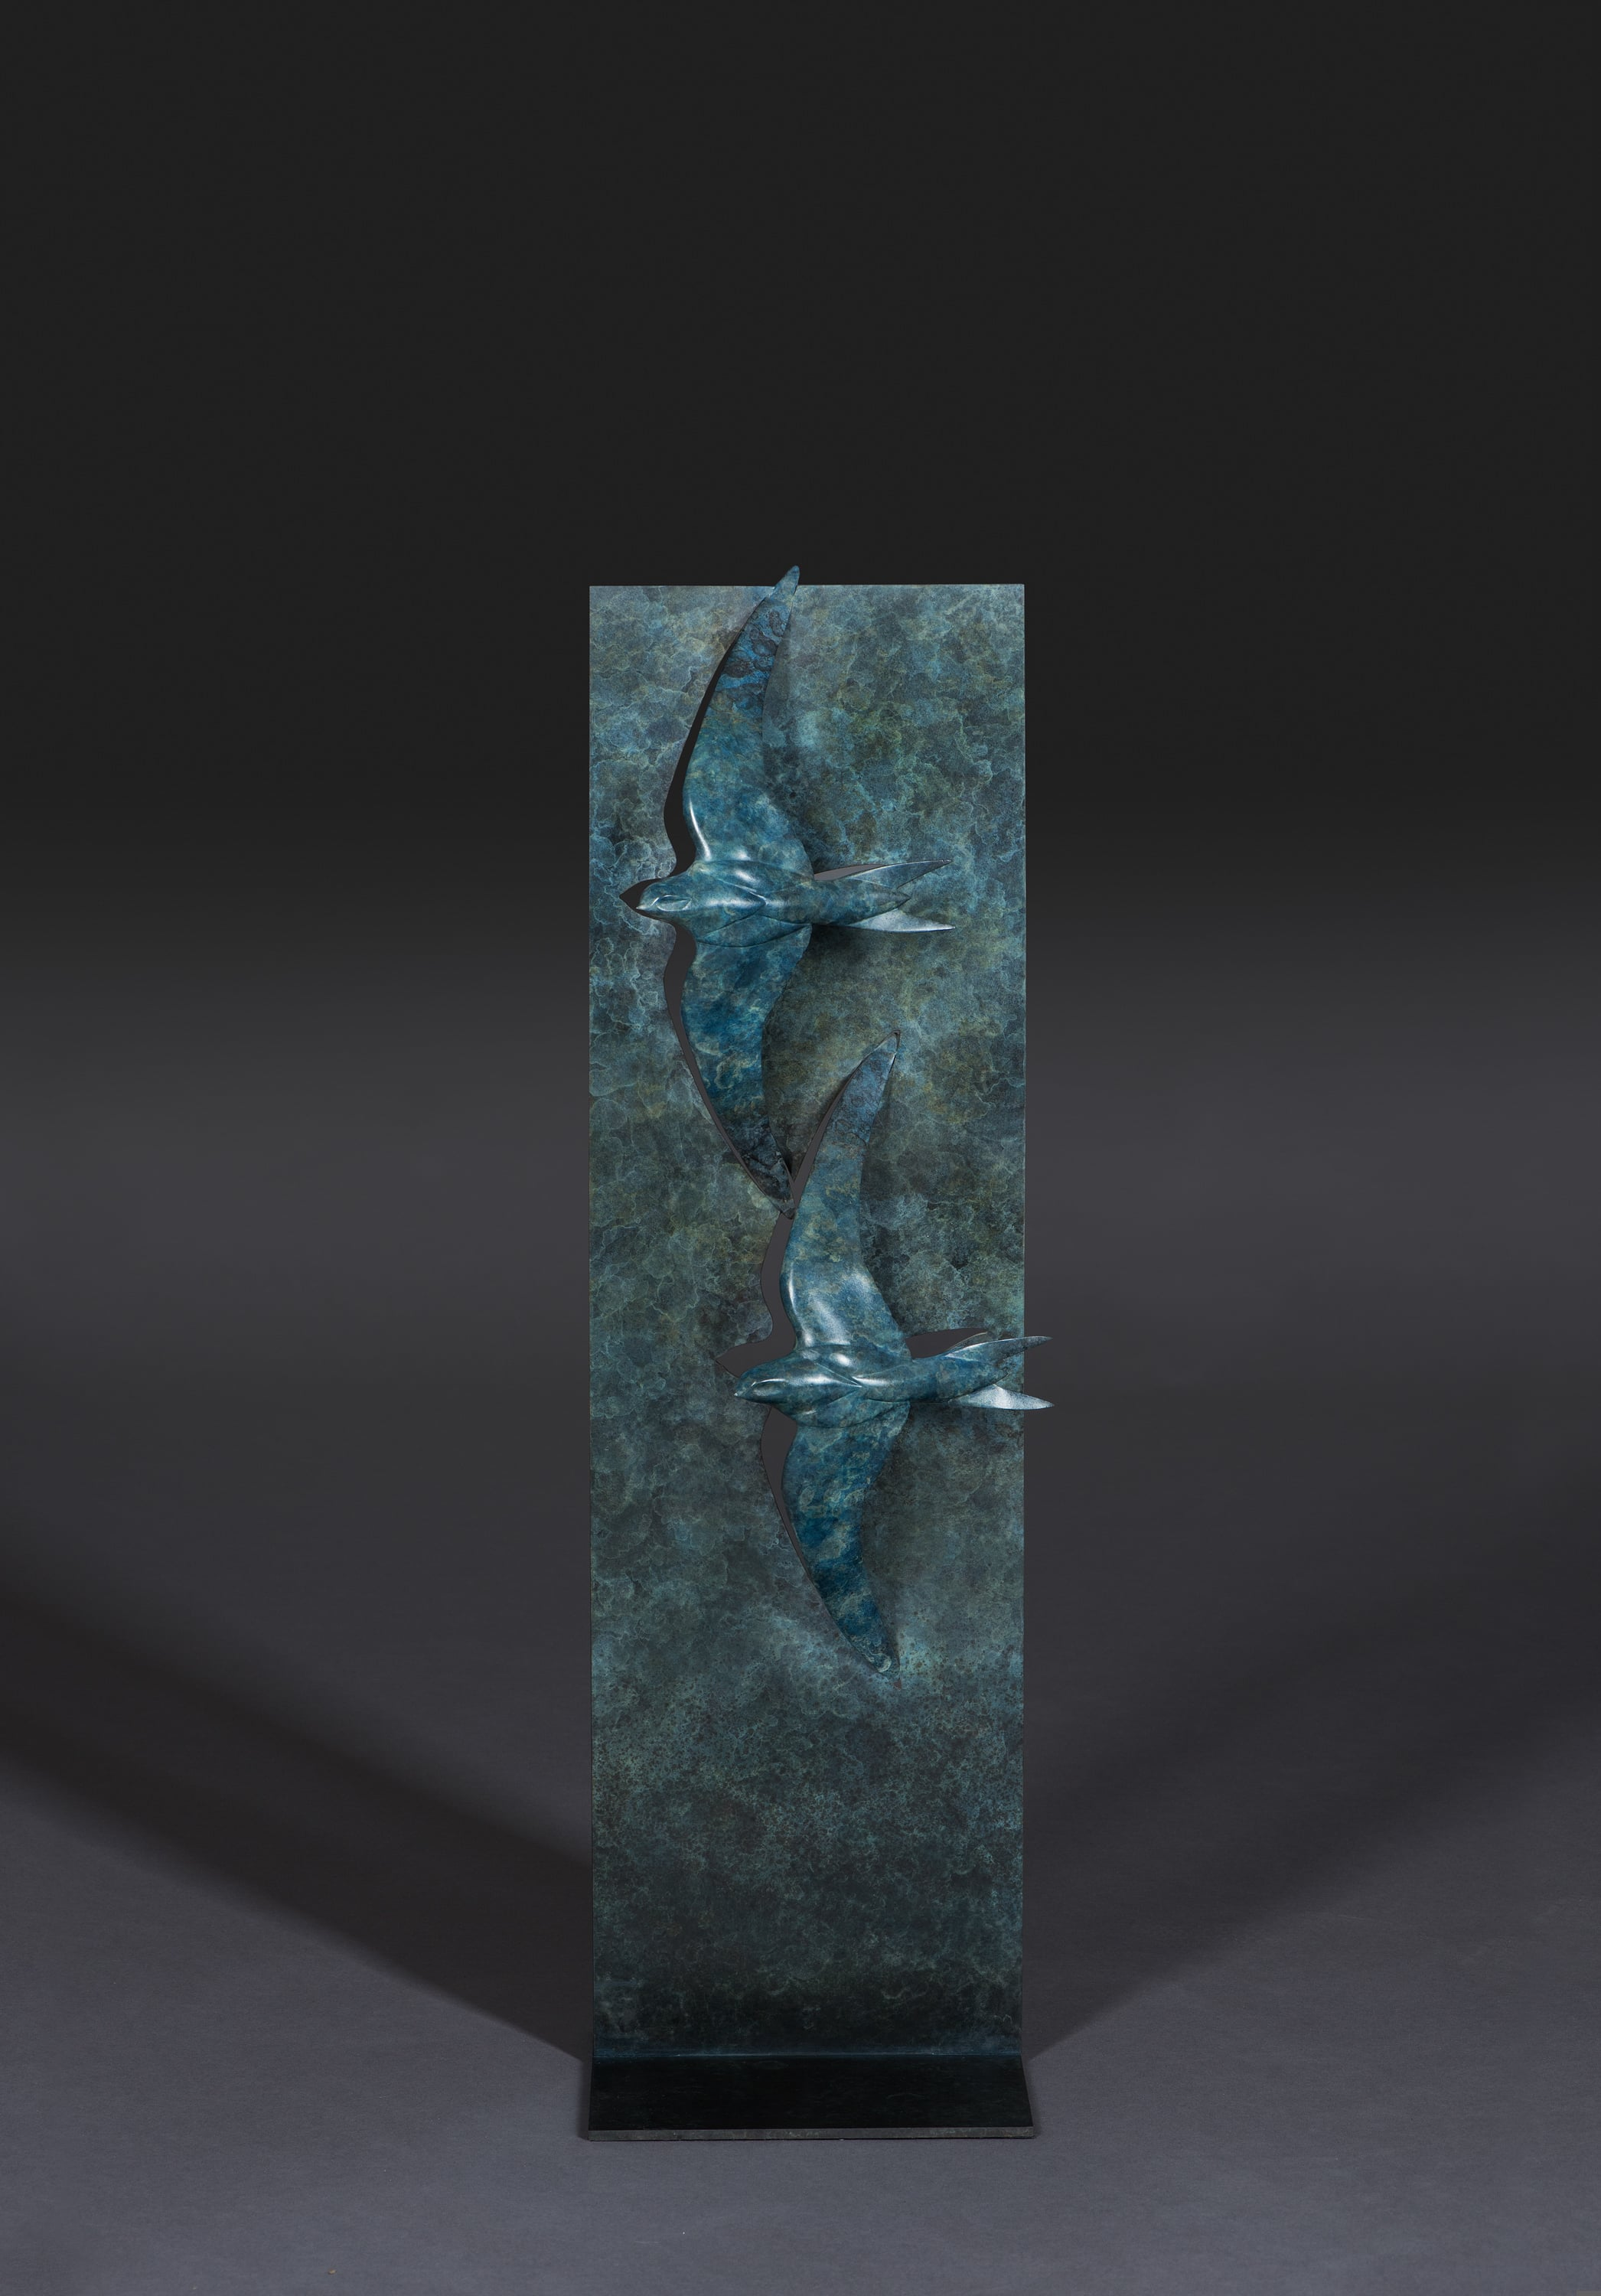 Swifts by Simon Gudgeon - £9600.00